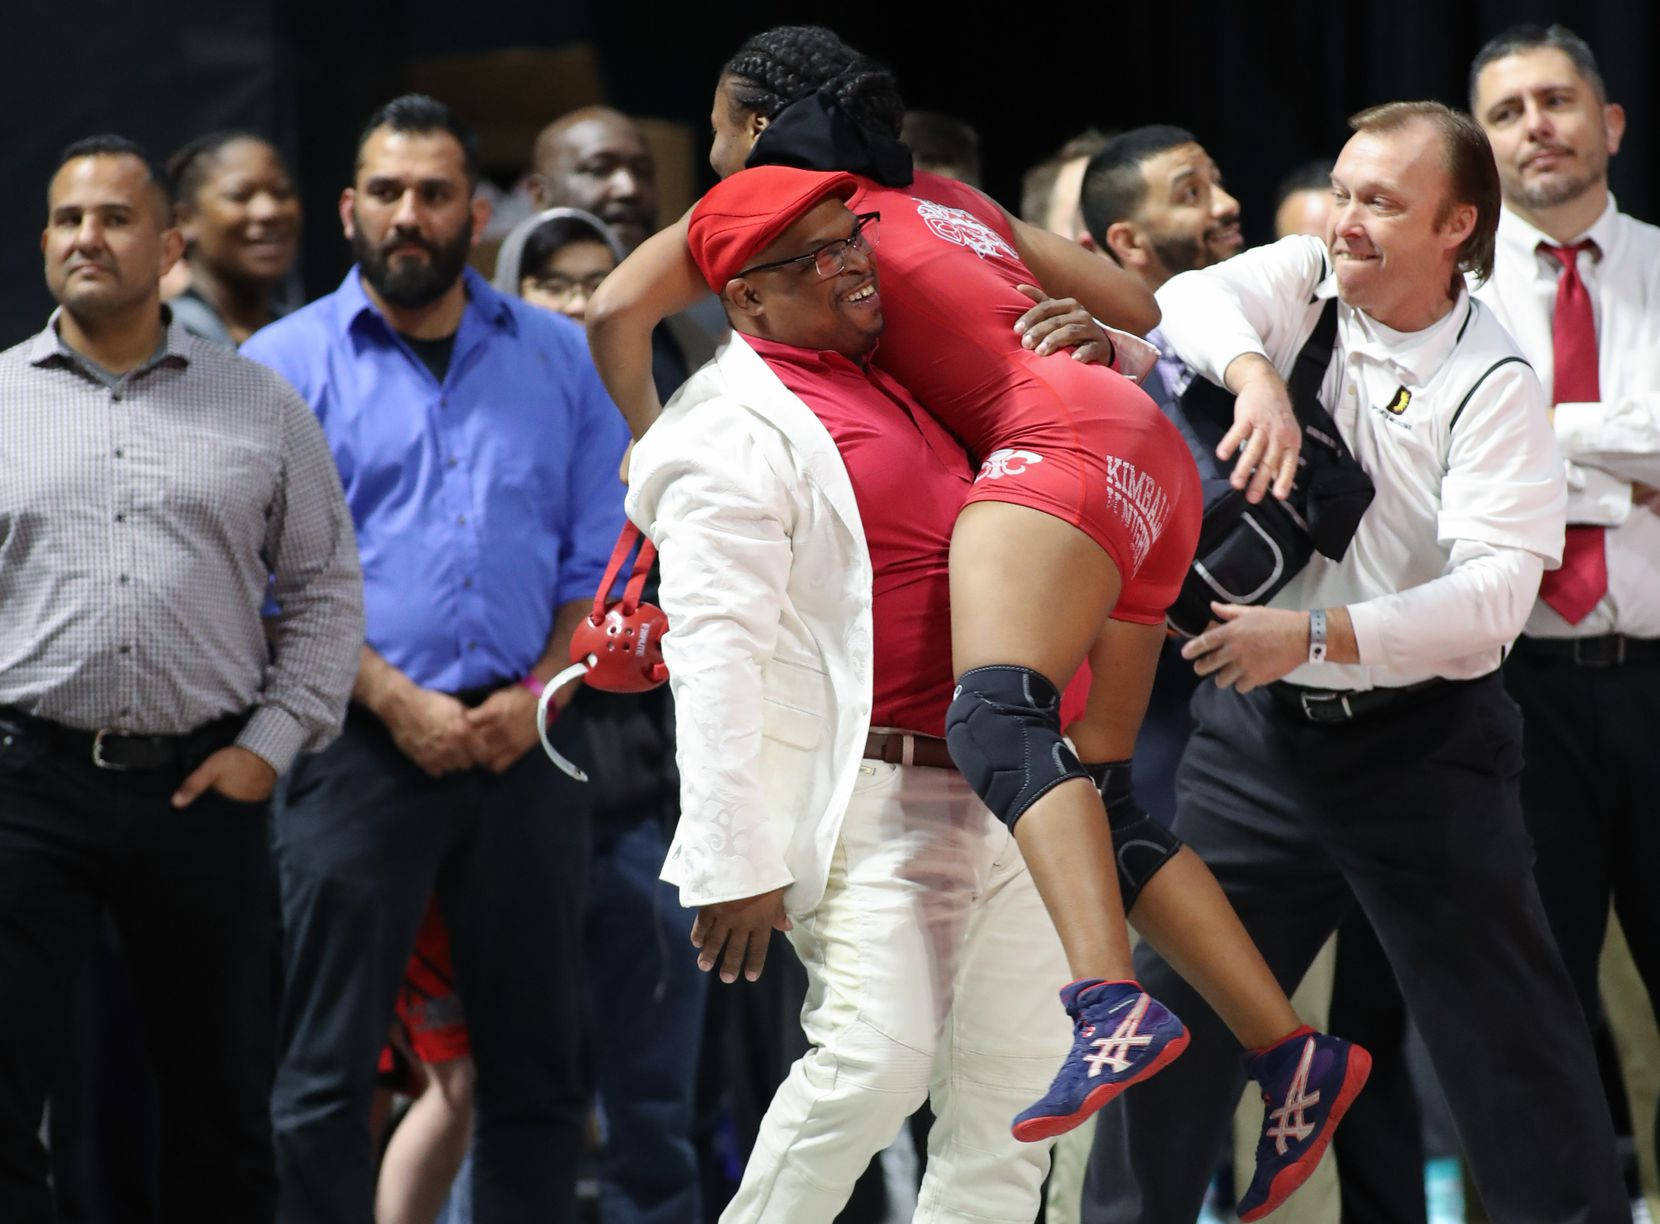 Kimball junior wrestler Destiny Miles embraces coach Devon Fortson after she won the UIL Class 5A girls 148-pound championship on Saturday, Feb. 23 at the Berry Center in Cypress, Texas. (Courtesy/Paul Brick)